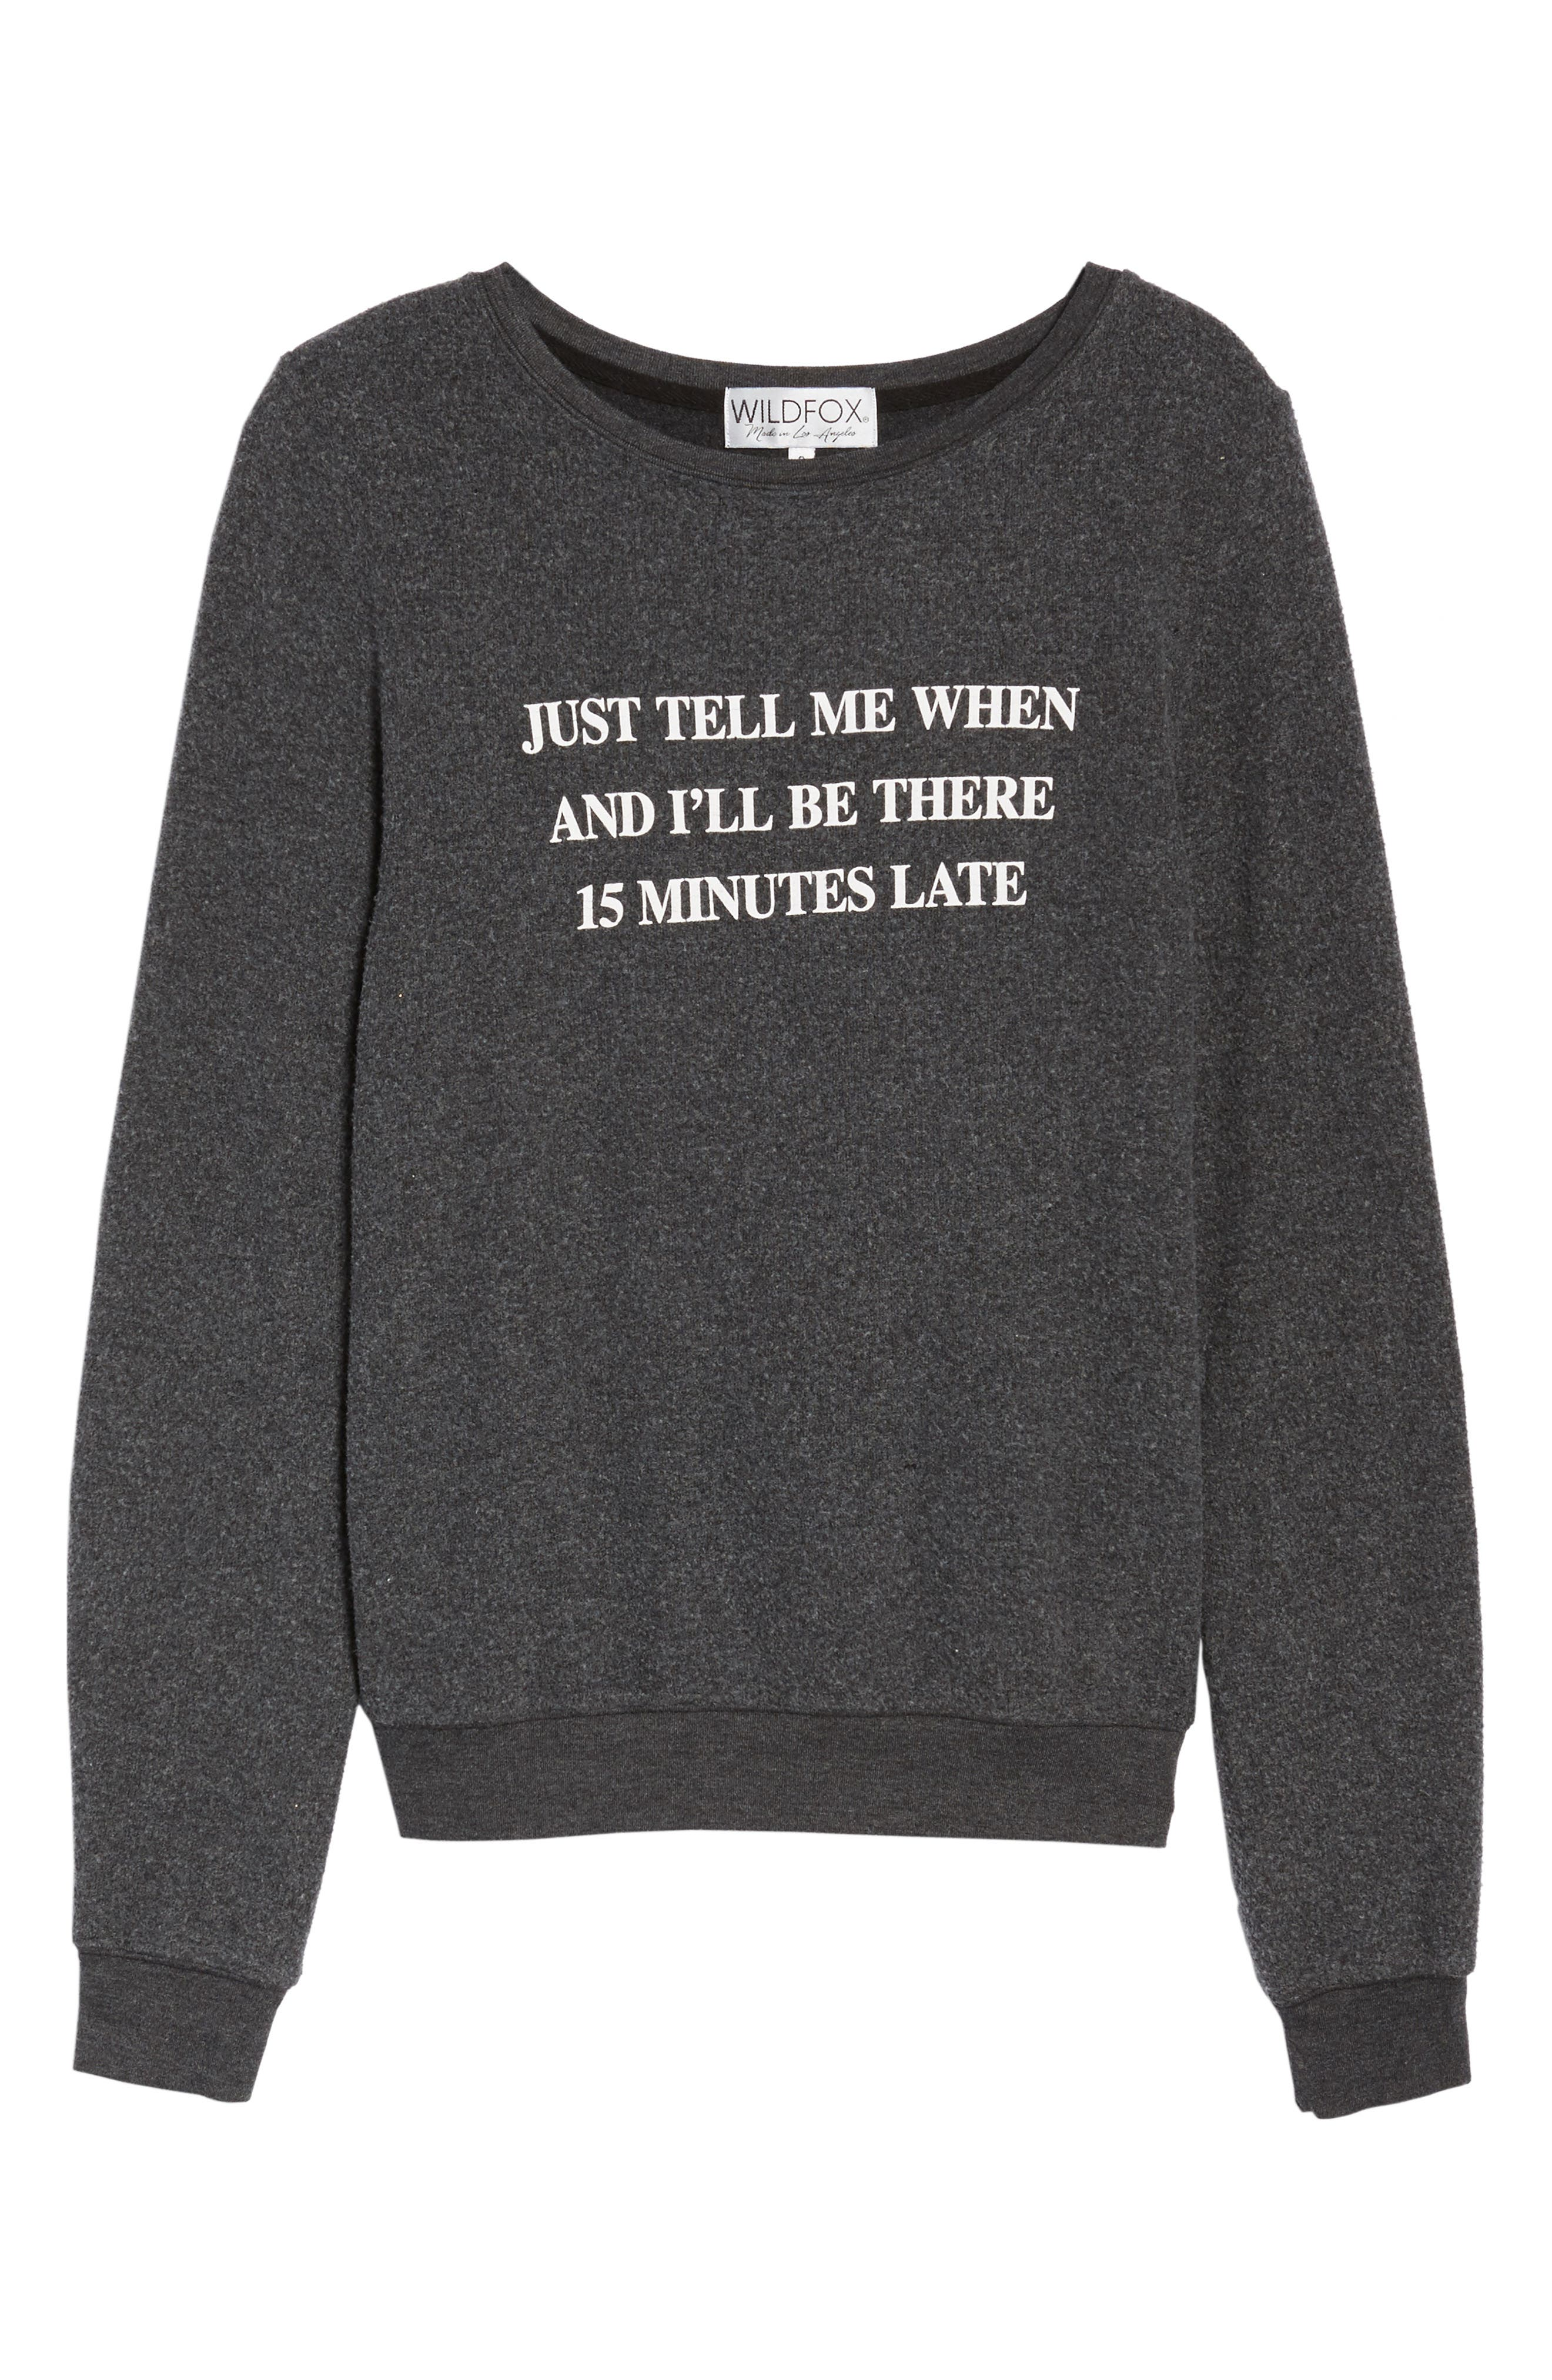 Just Tell Me When Sweatshirt,                             Alternate thumbnail 6, color,